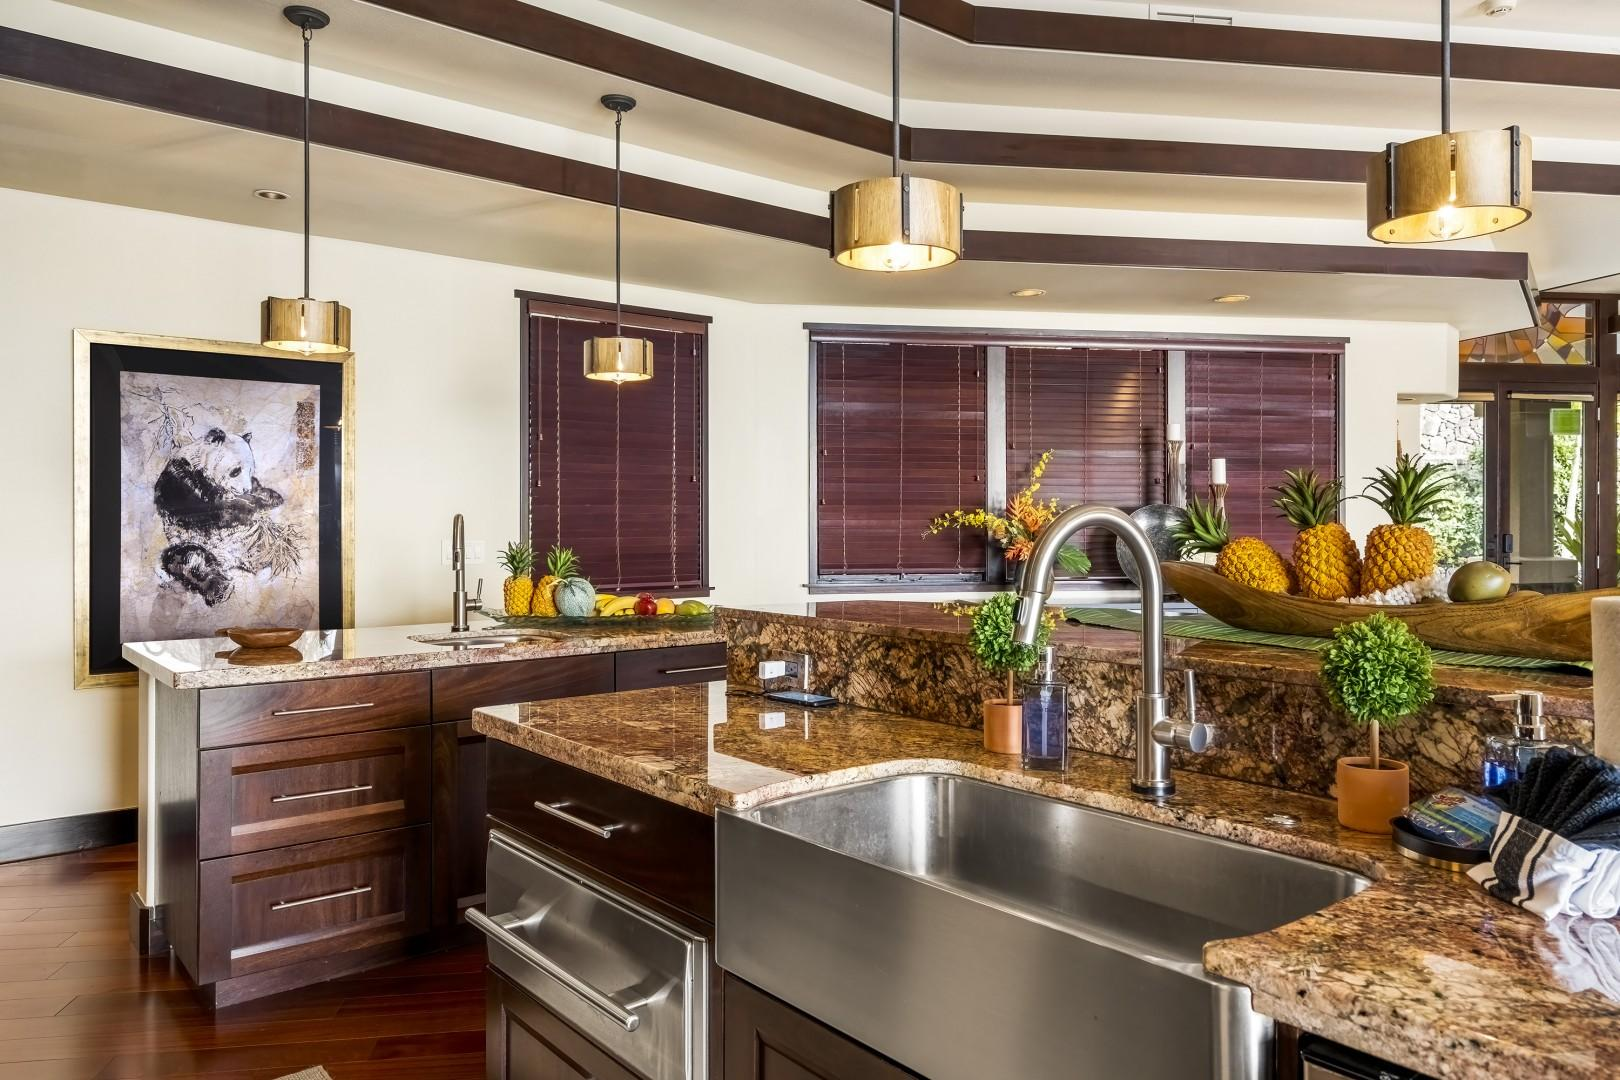 Prepare your favorite meals in this fantastic Chef's kitchen